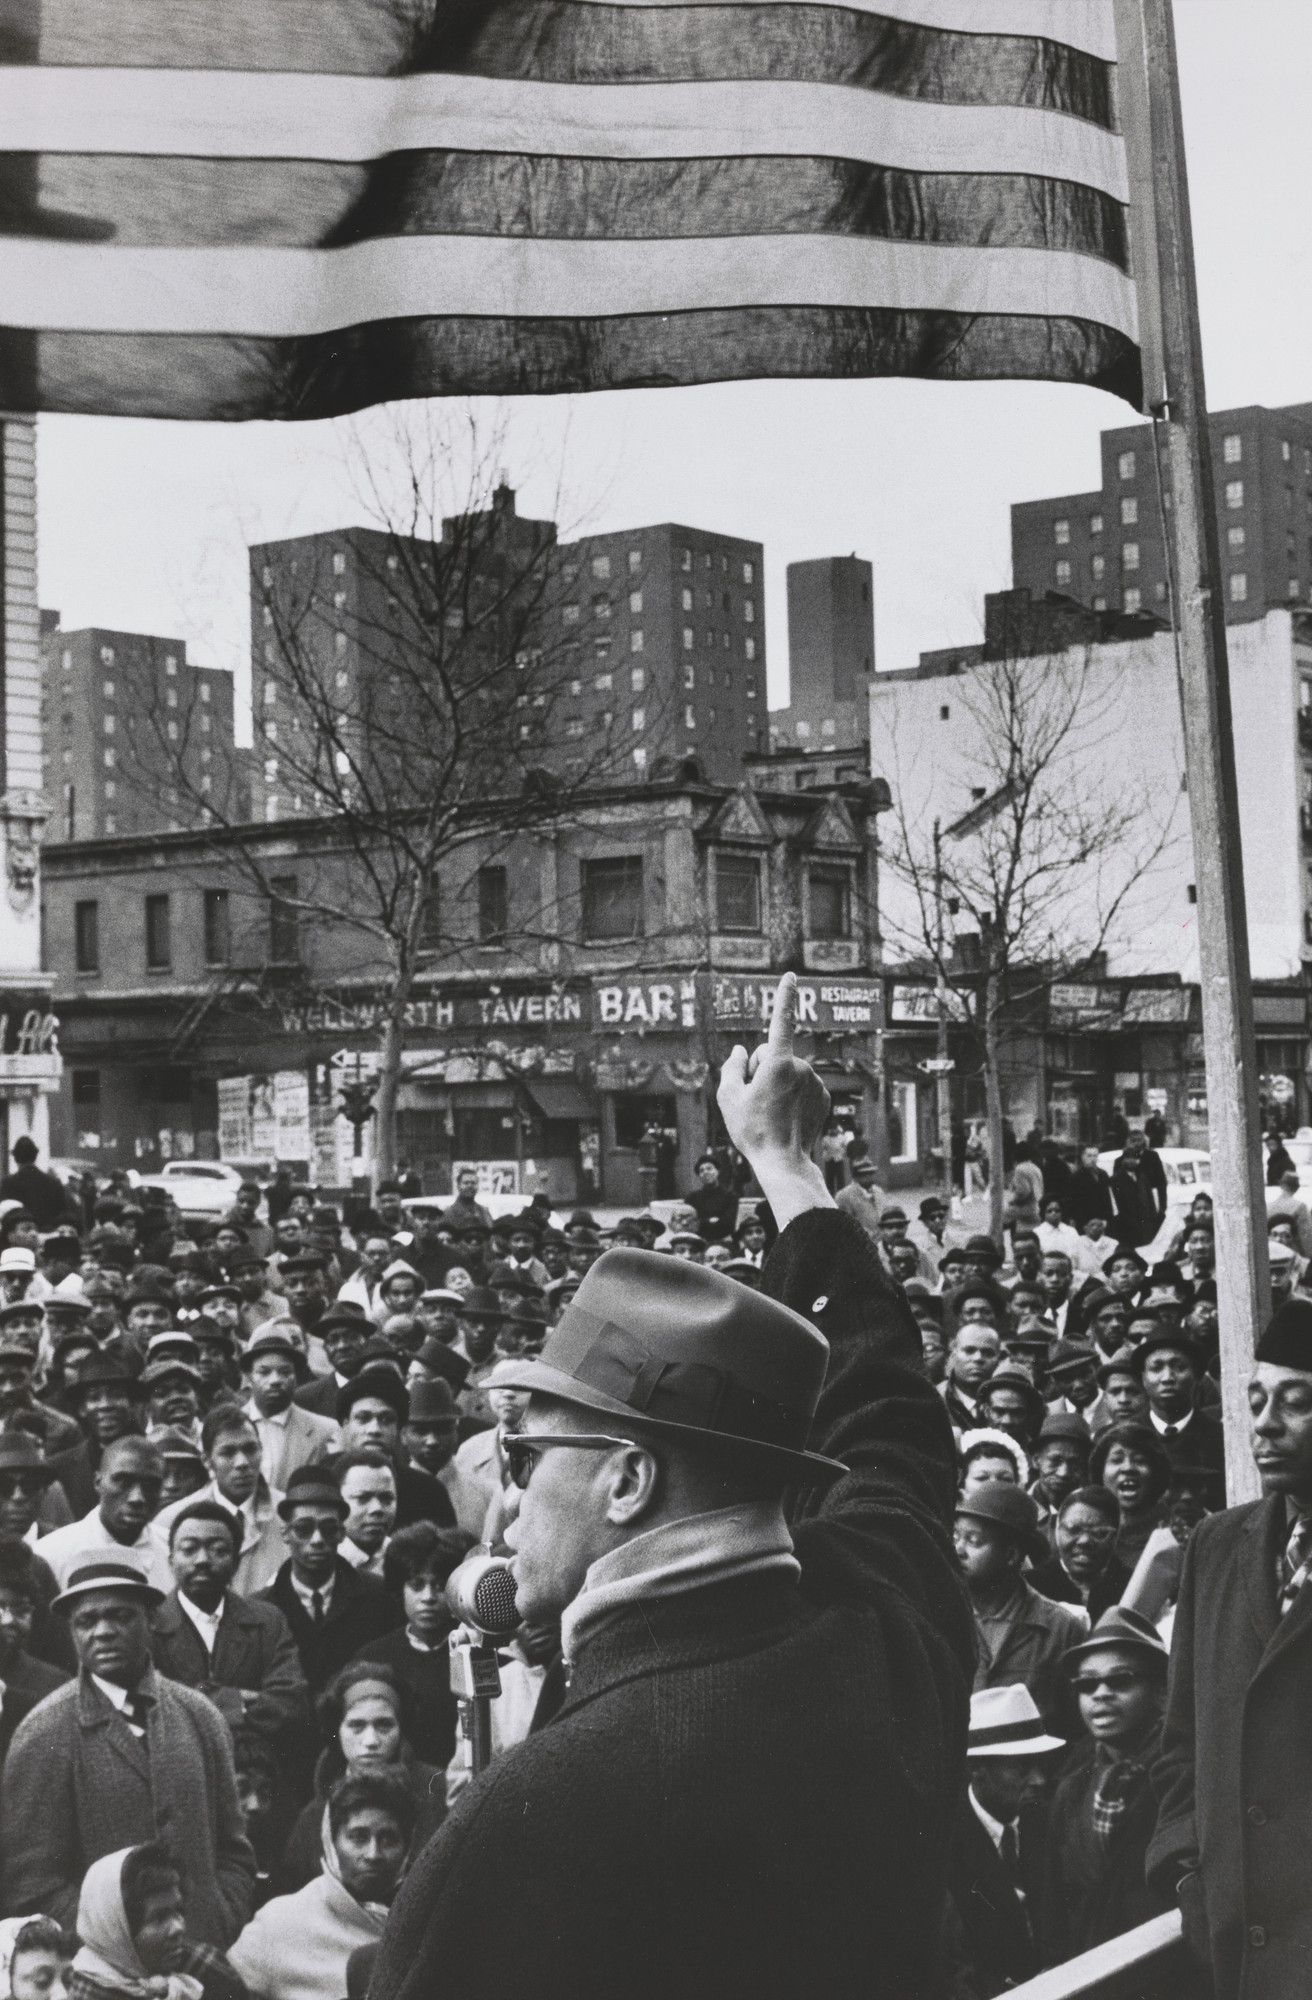 Gordon Parks. Malcolm X Gives Speech at Rally, Harlem, New York. 1963